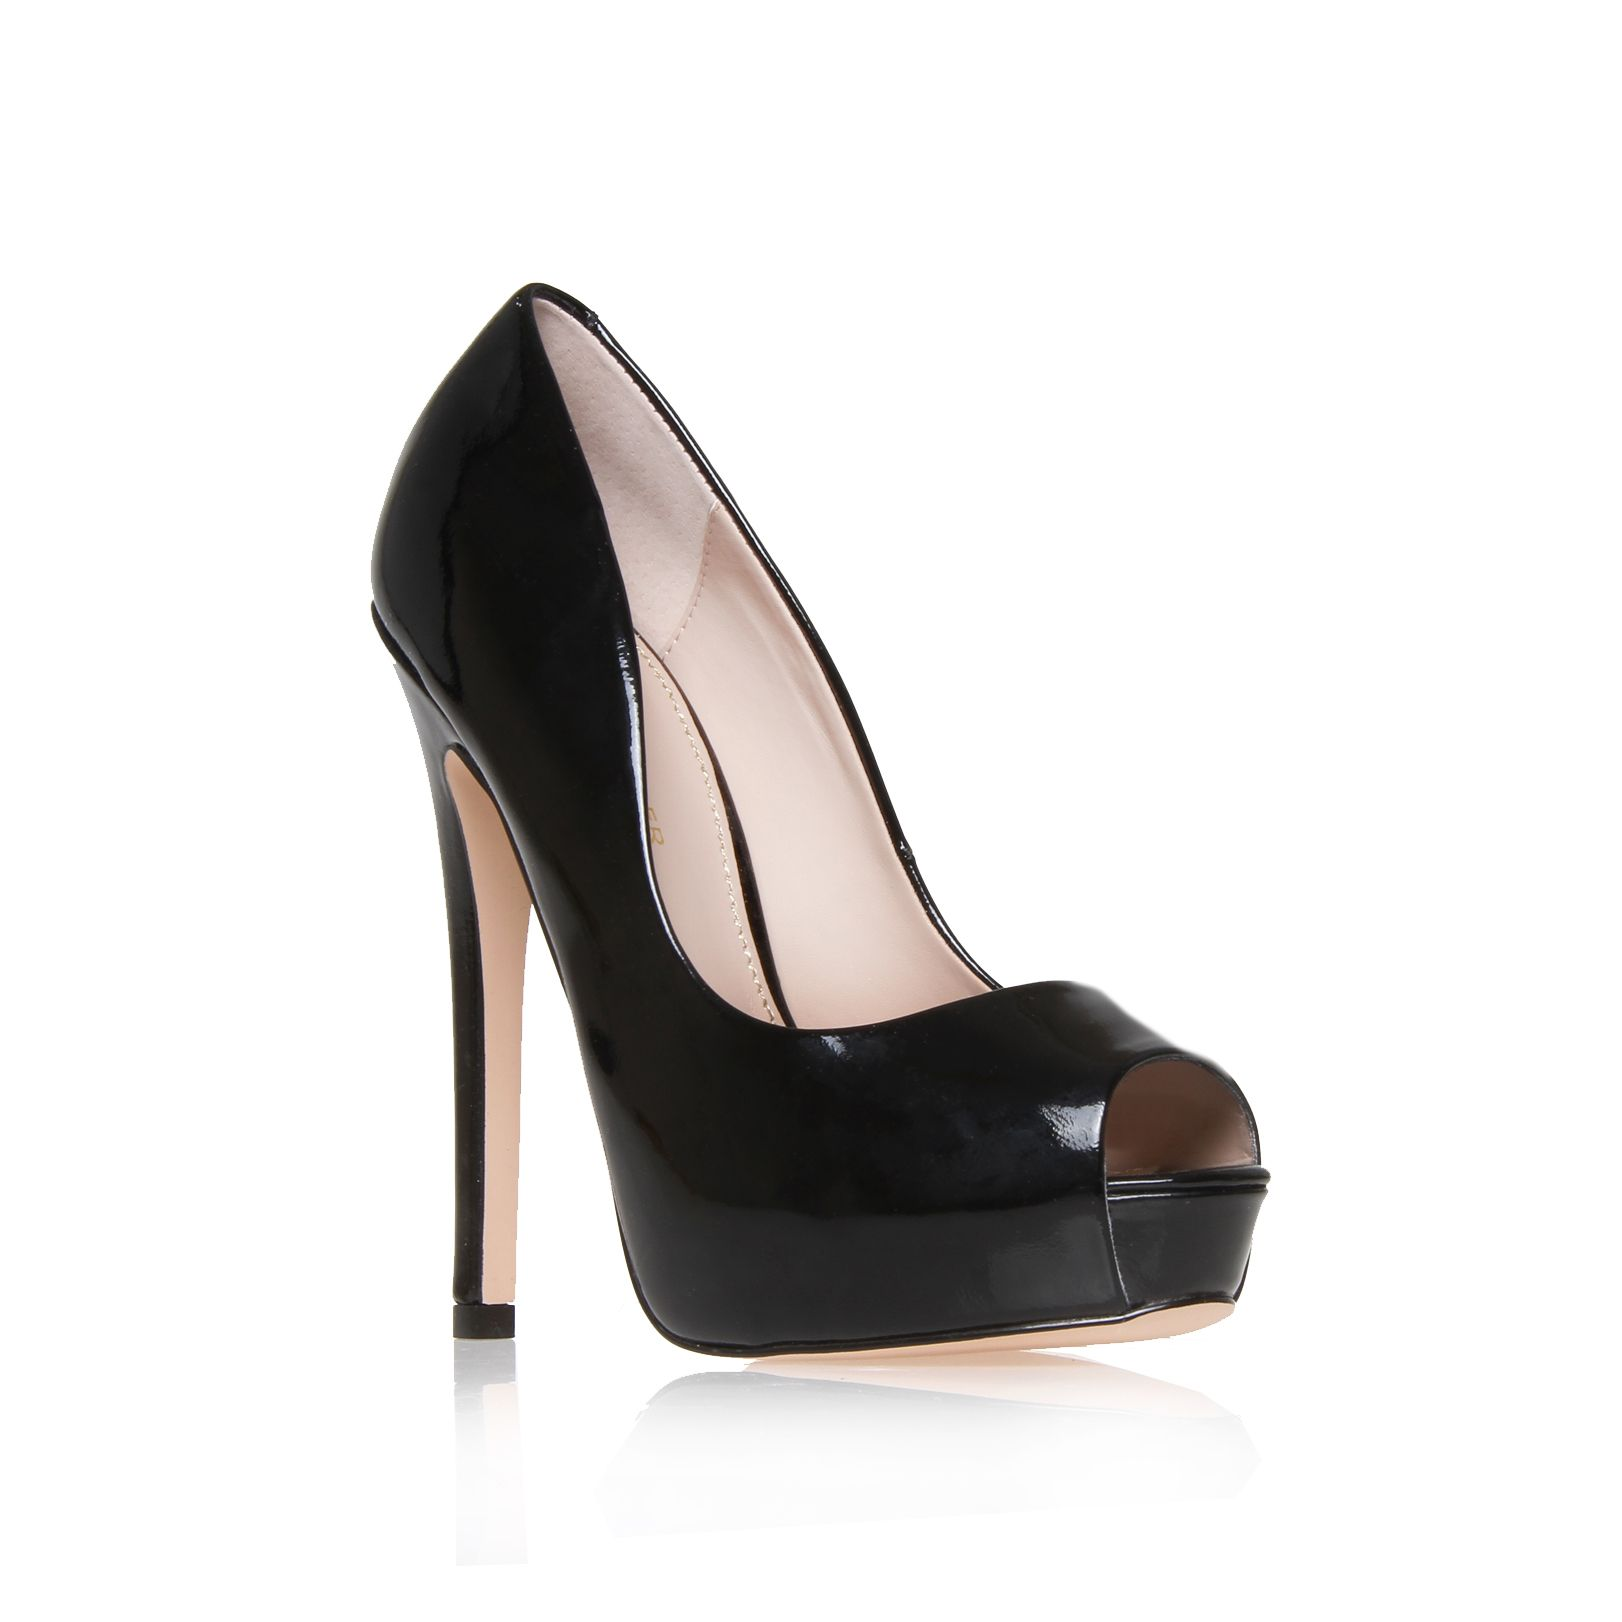 Admire platform court shoes